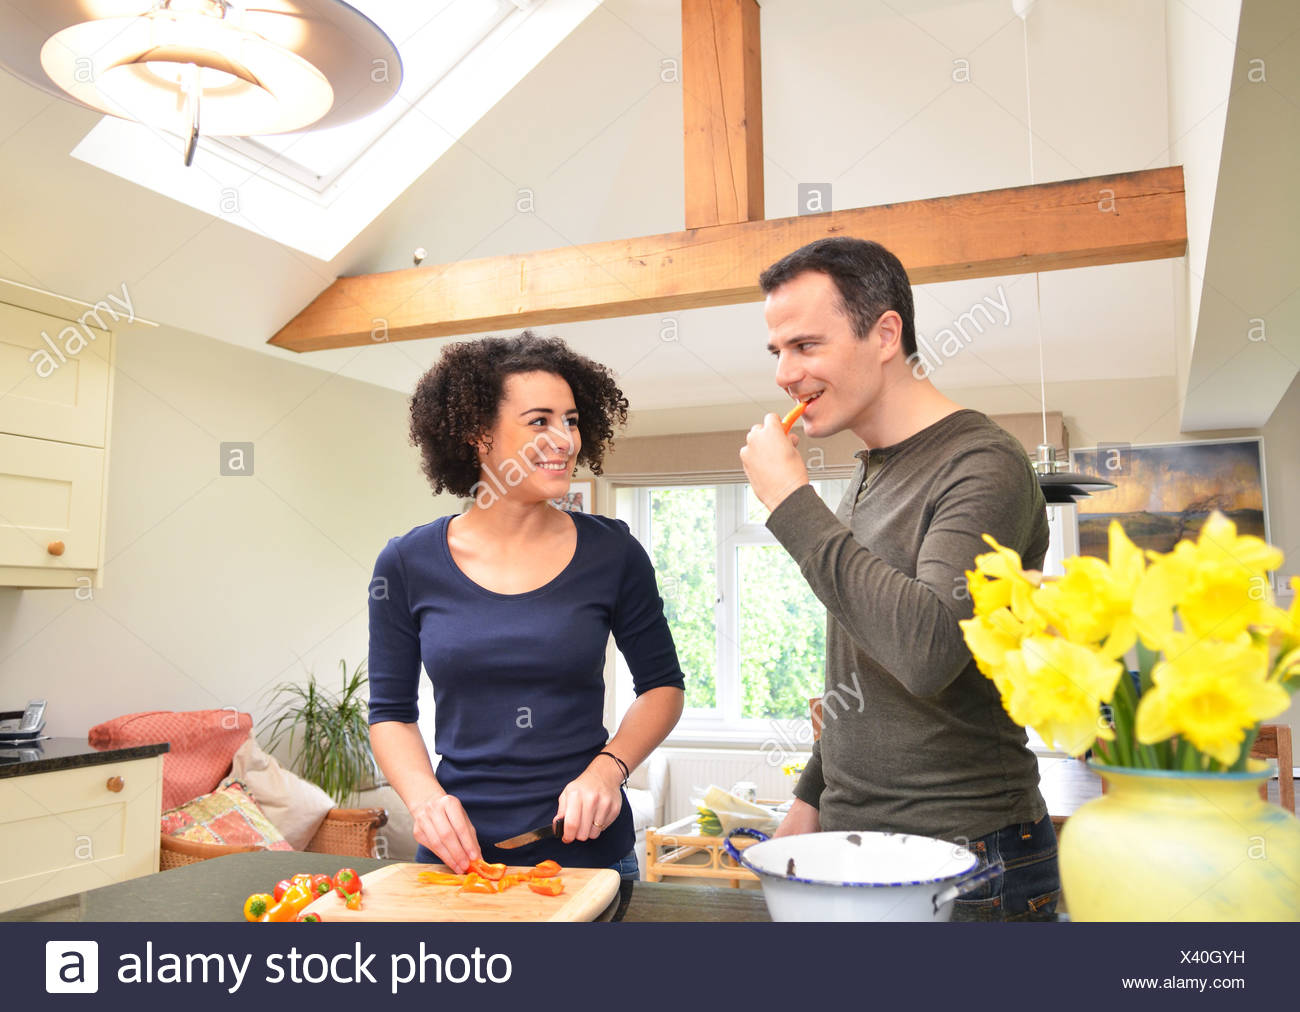 Couple in kitchen tasting and slicing peppers - Stock Image